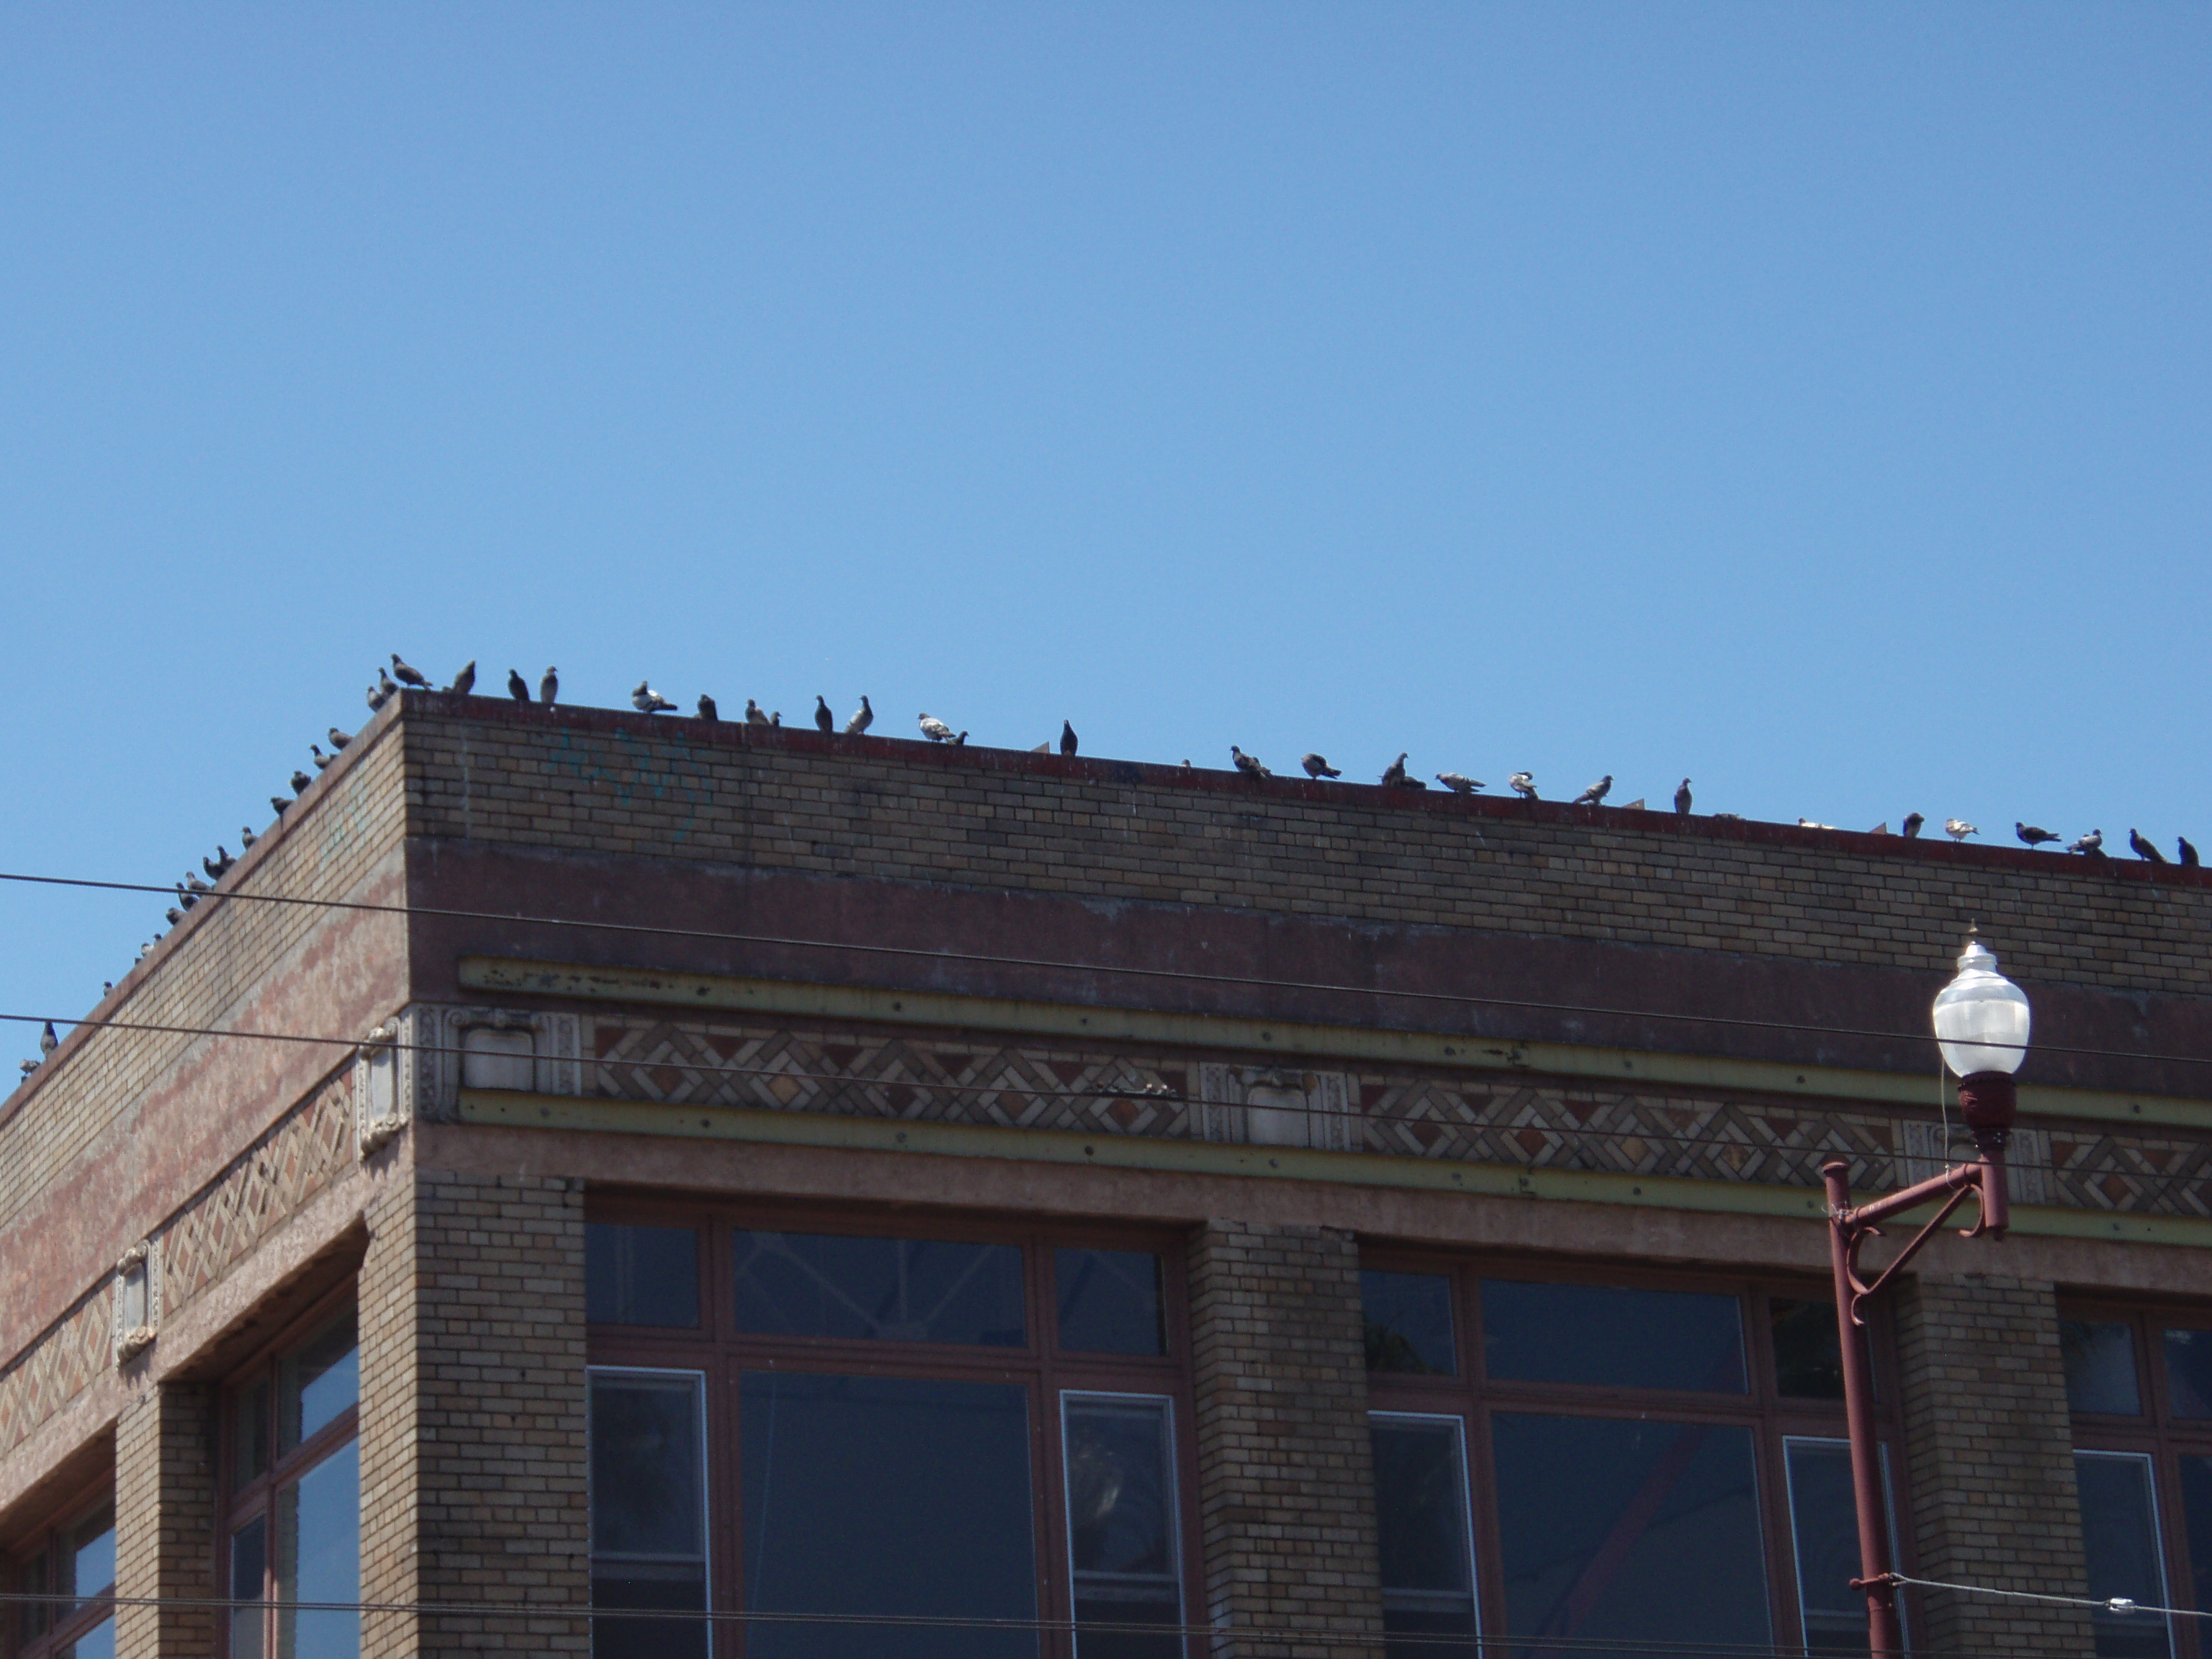 I was surprised to see all the pigeons that loiter at 24th and Mission not know how to handle all the people and take refuge on a neighboring roof.  NYC pigeons they are not.